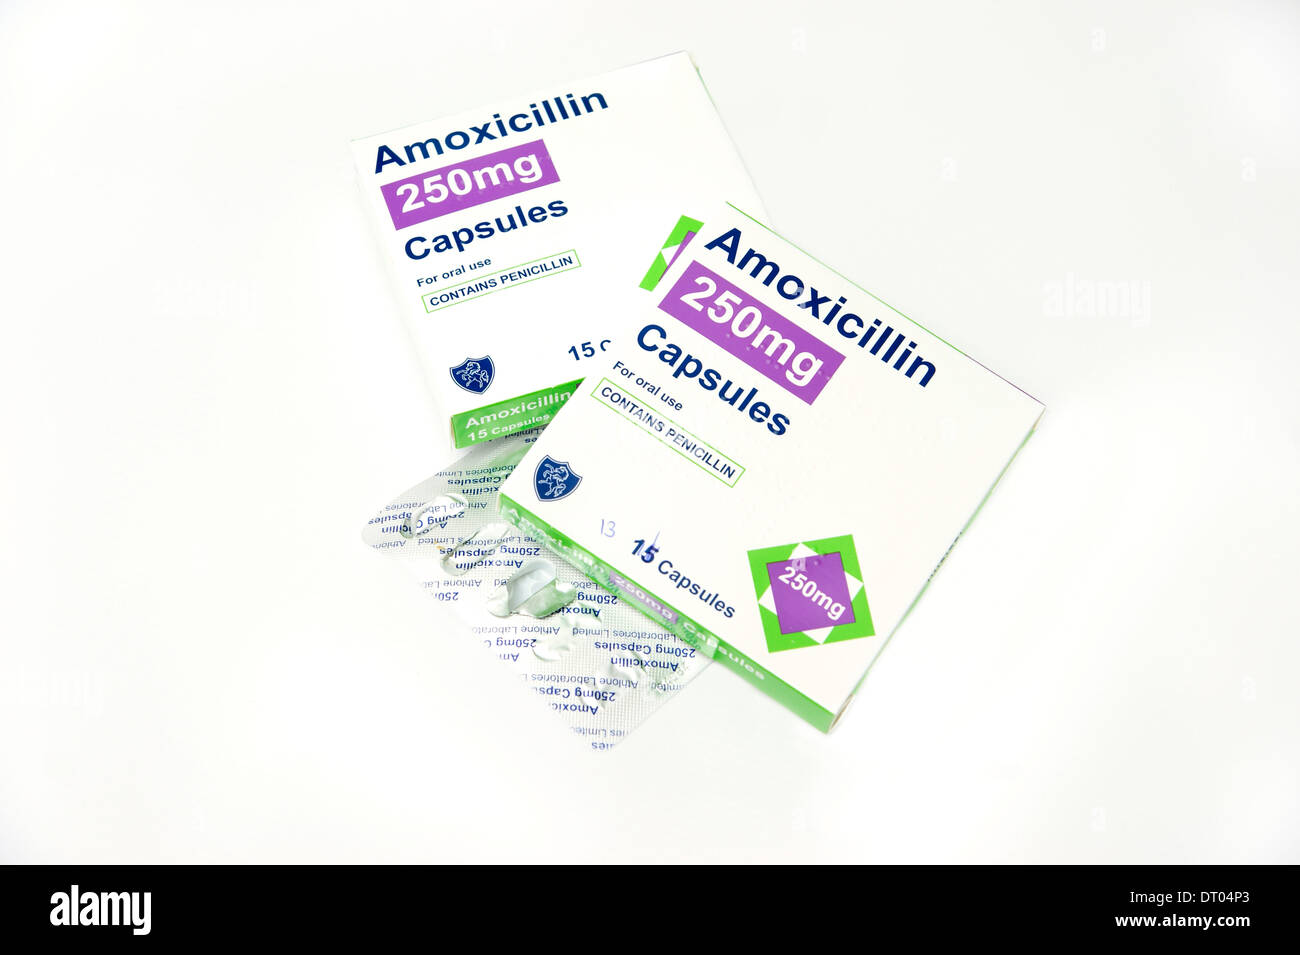 Boxes of Amoxicillin capsules antibiotics with penicillin to treat a wide range of infections - Stock Image